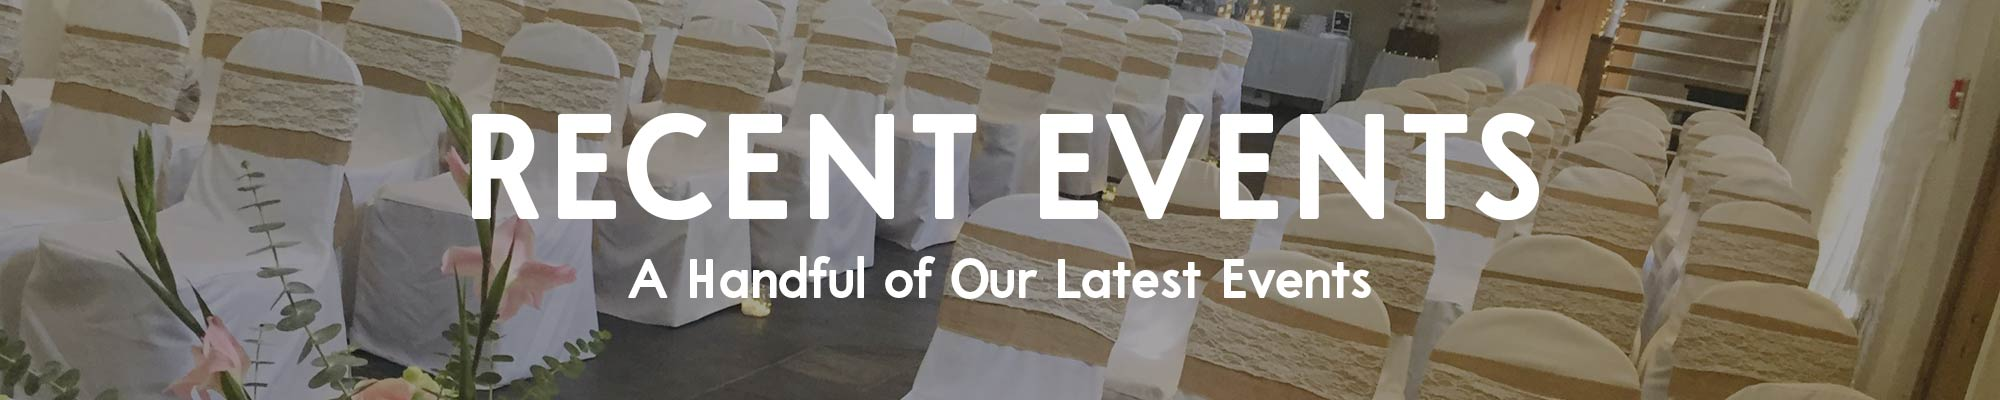 Event Catering Devon Page Header Image